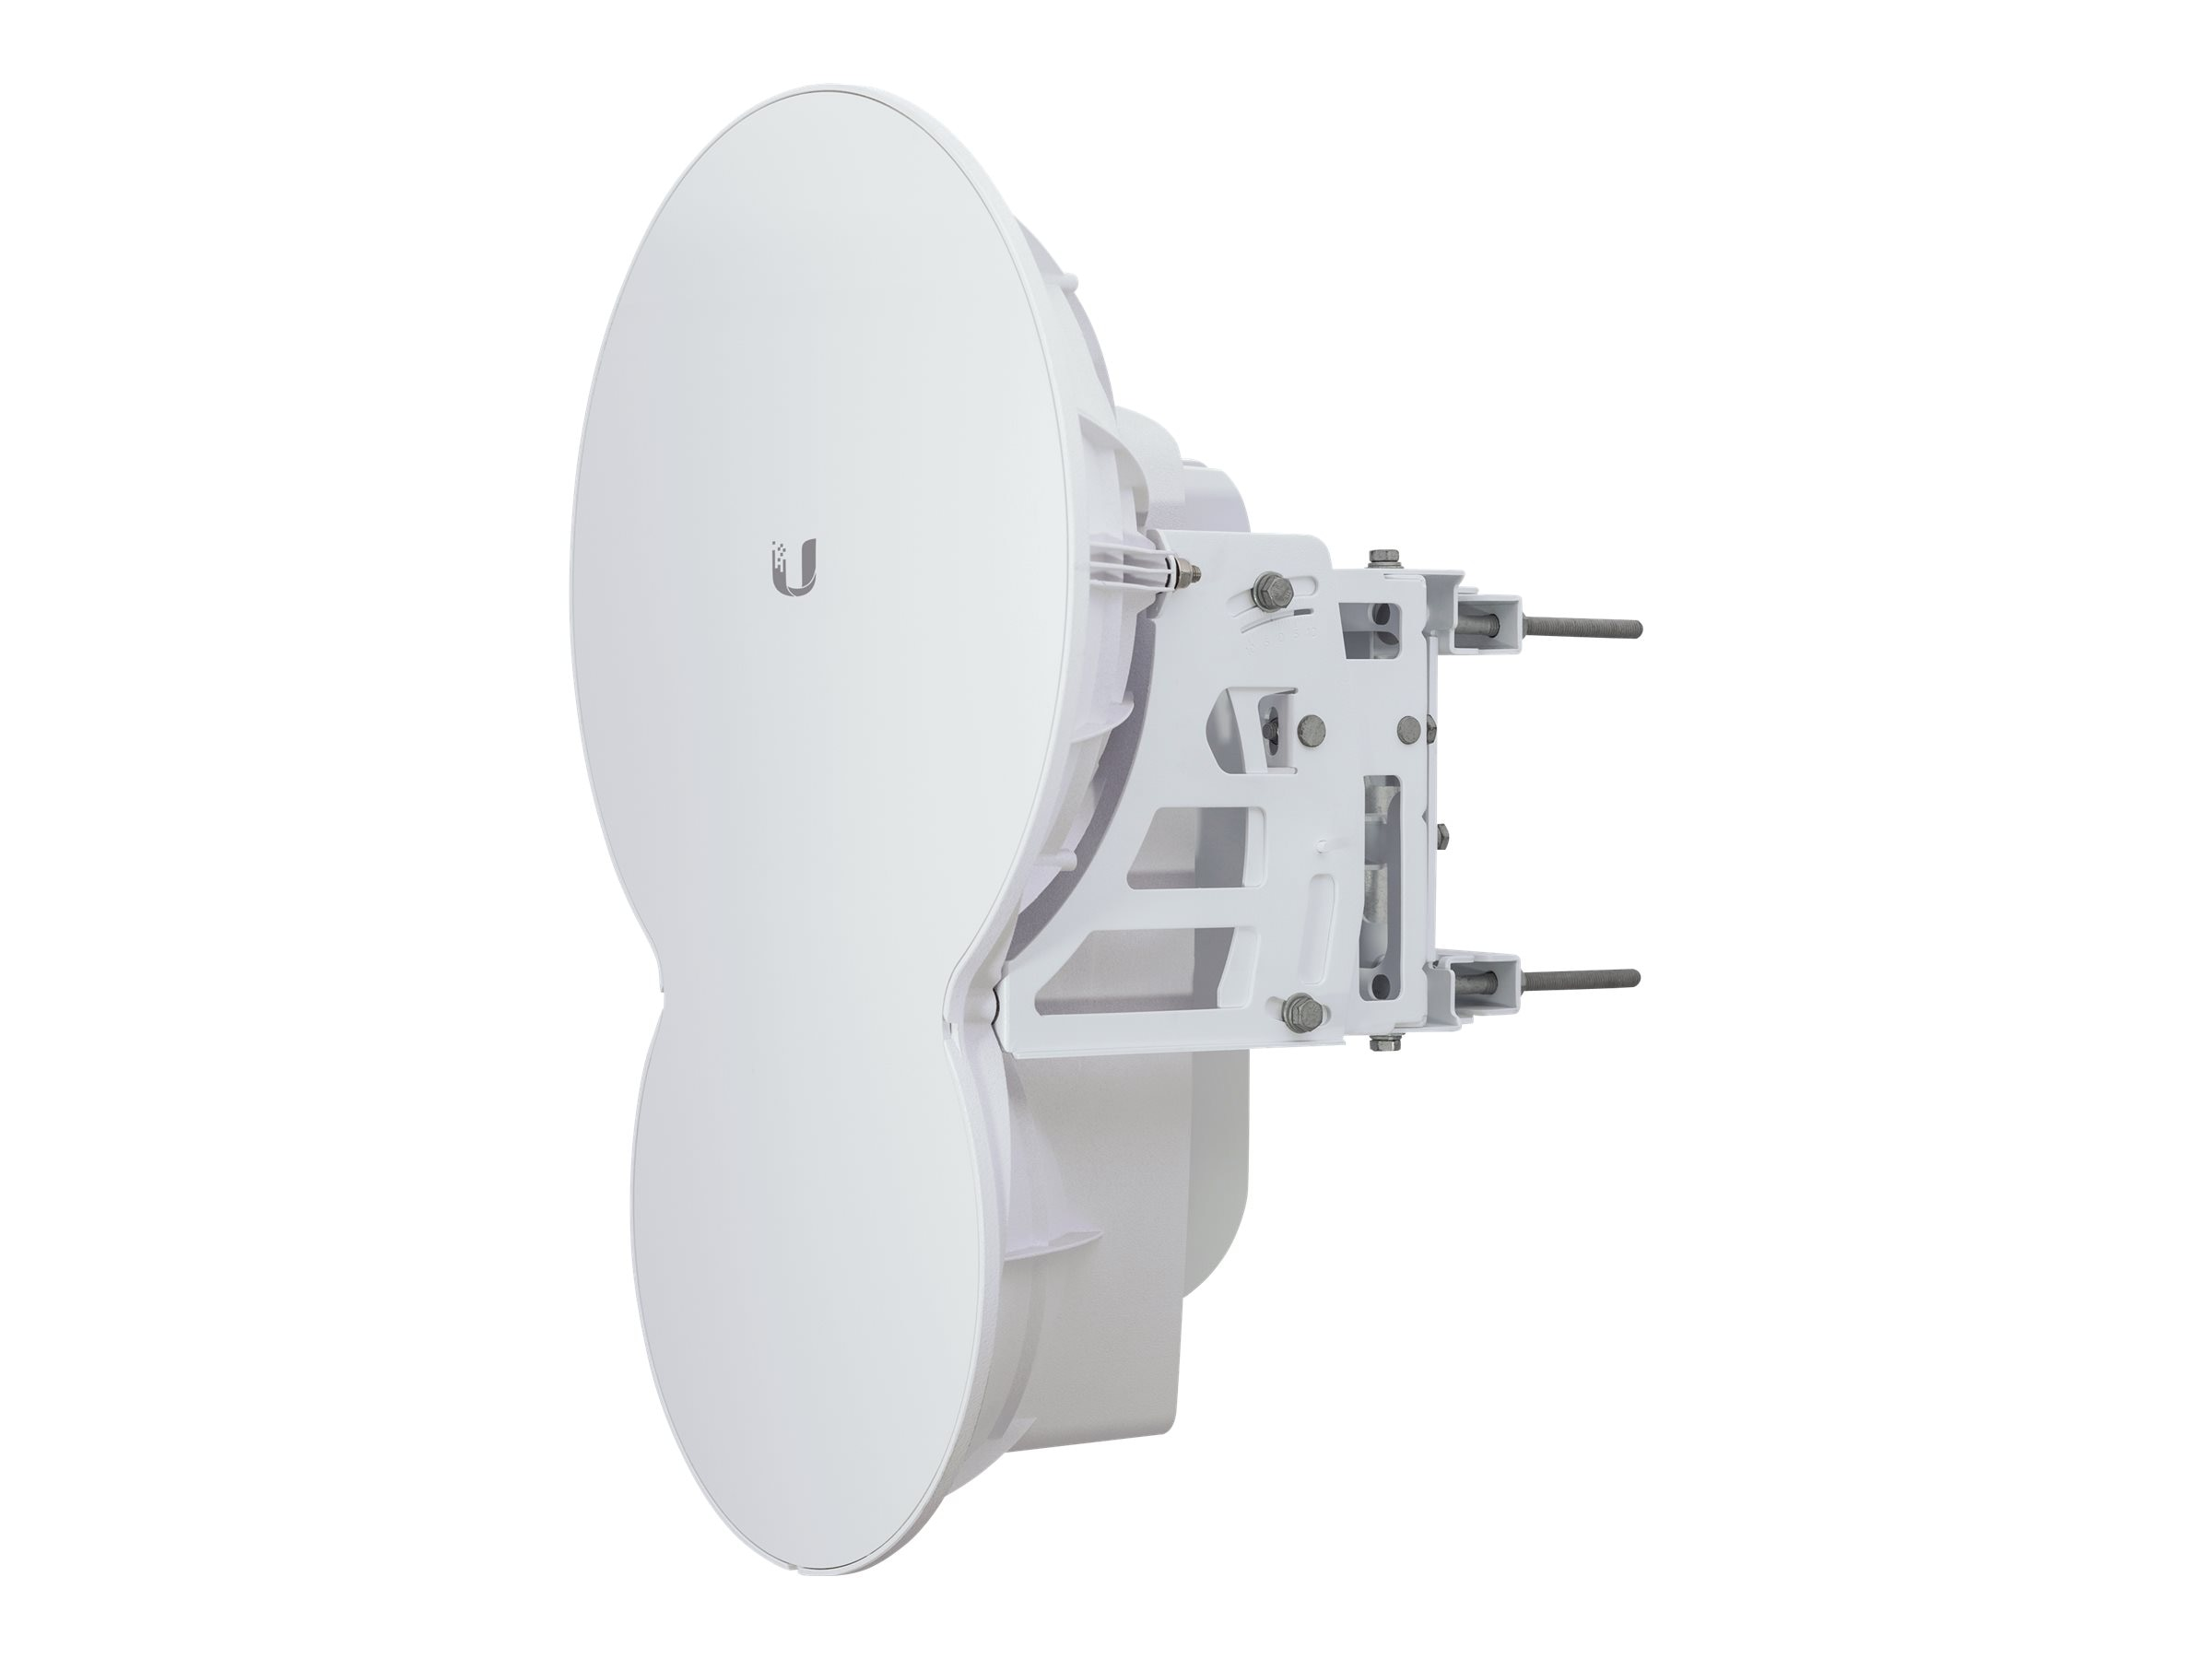 Ubiquiti Airfiber 24GHz, AF-24, 16787397, Wireless Antennas & Extenders